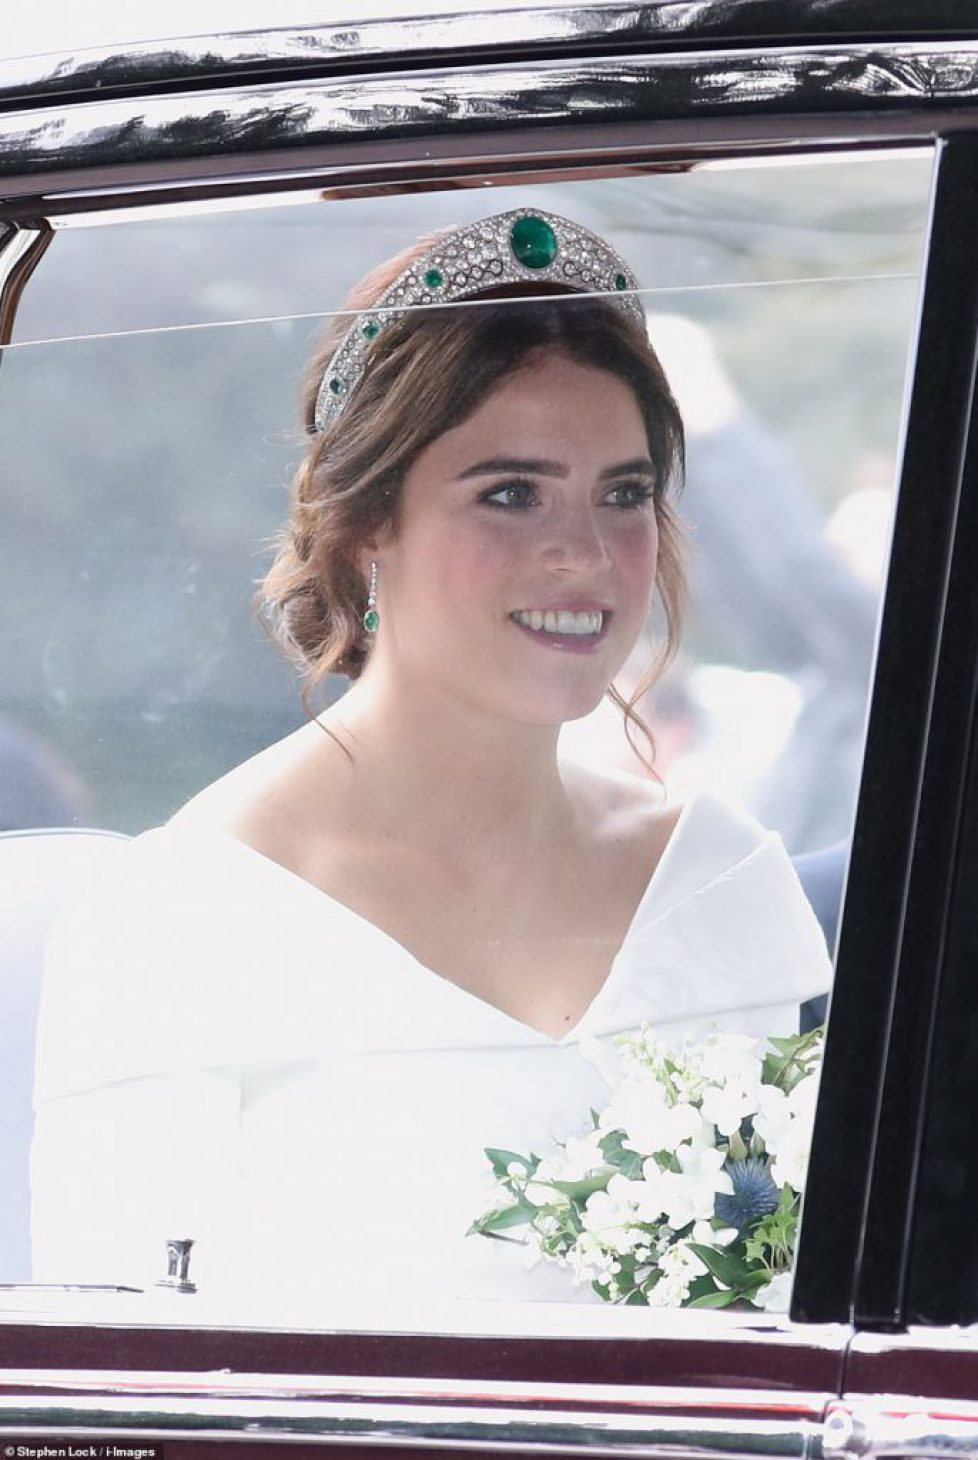 4984172-6268487-Eugenie_pulls_up_the_chapel_in_the_wedding_car_wearing_a_tiara_c-a-112_1539338568819